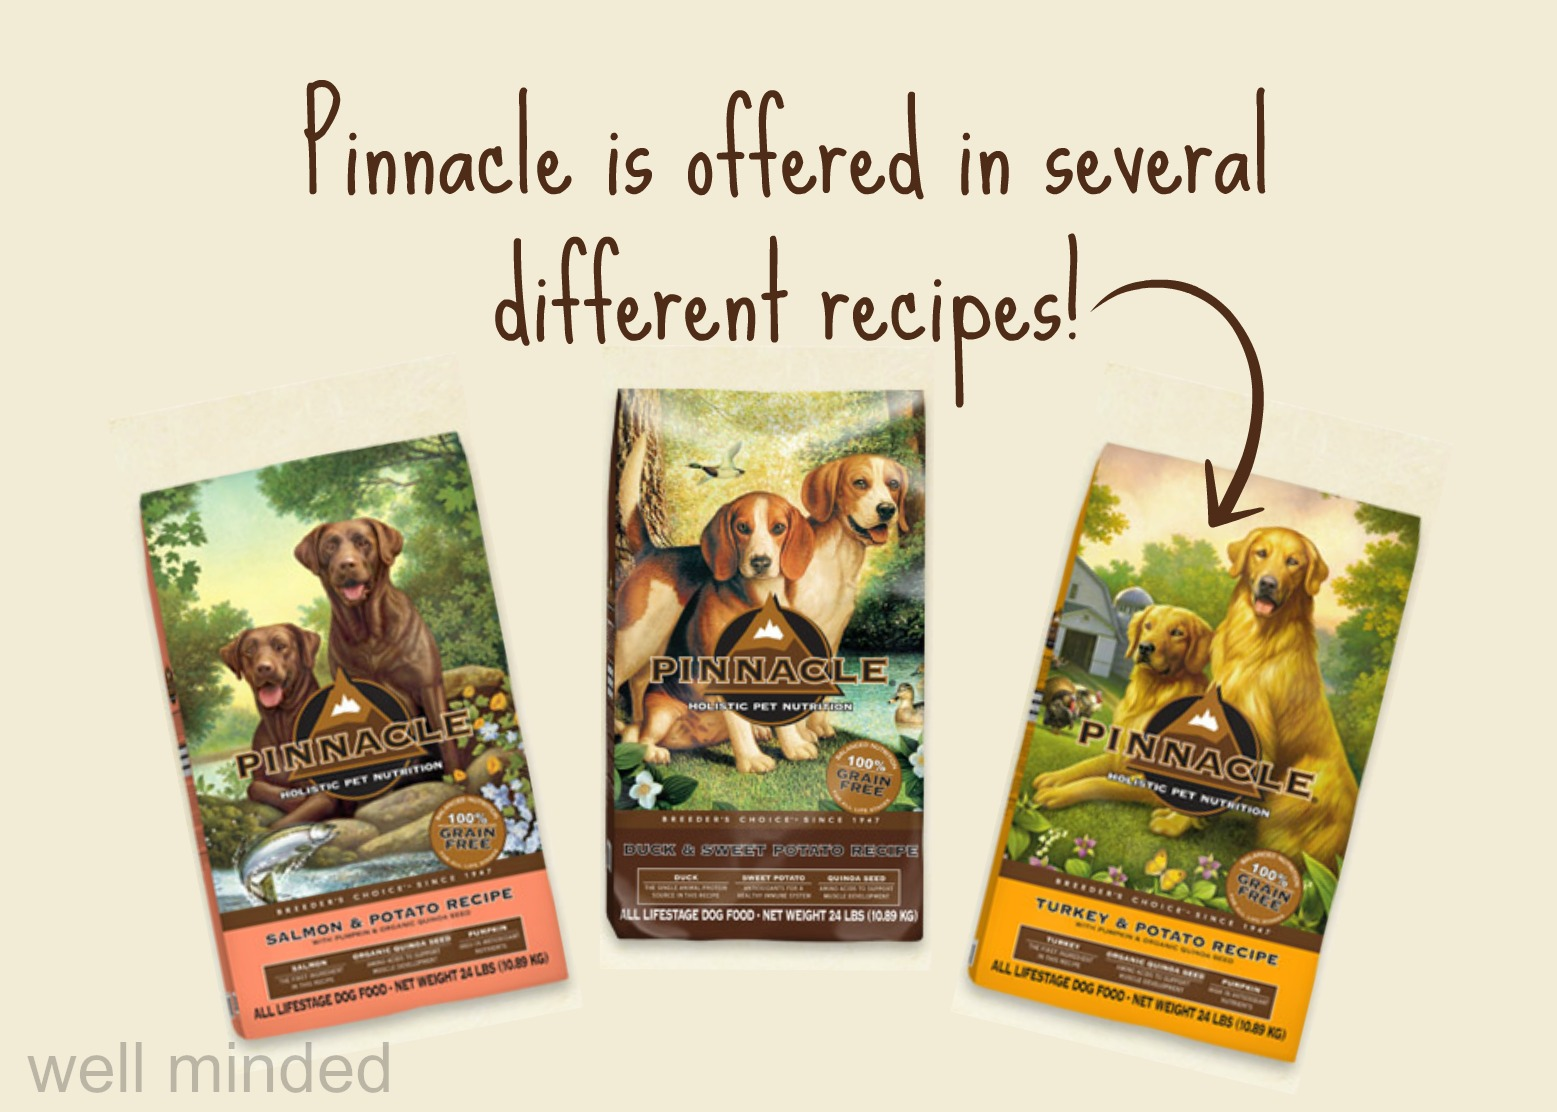 Pinnacle is offered in several different recipes.